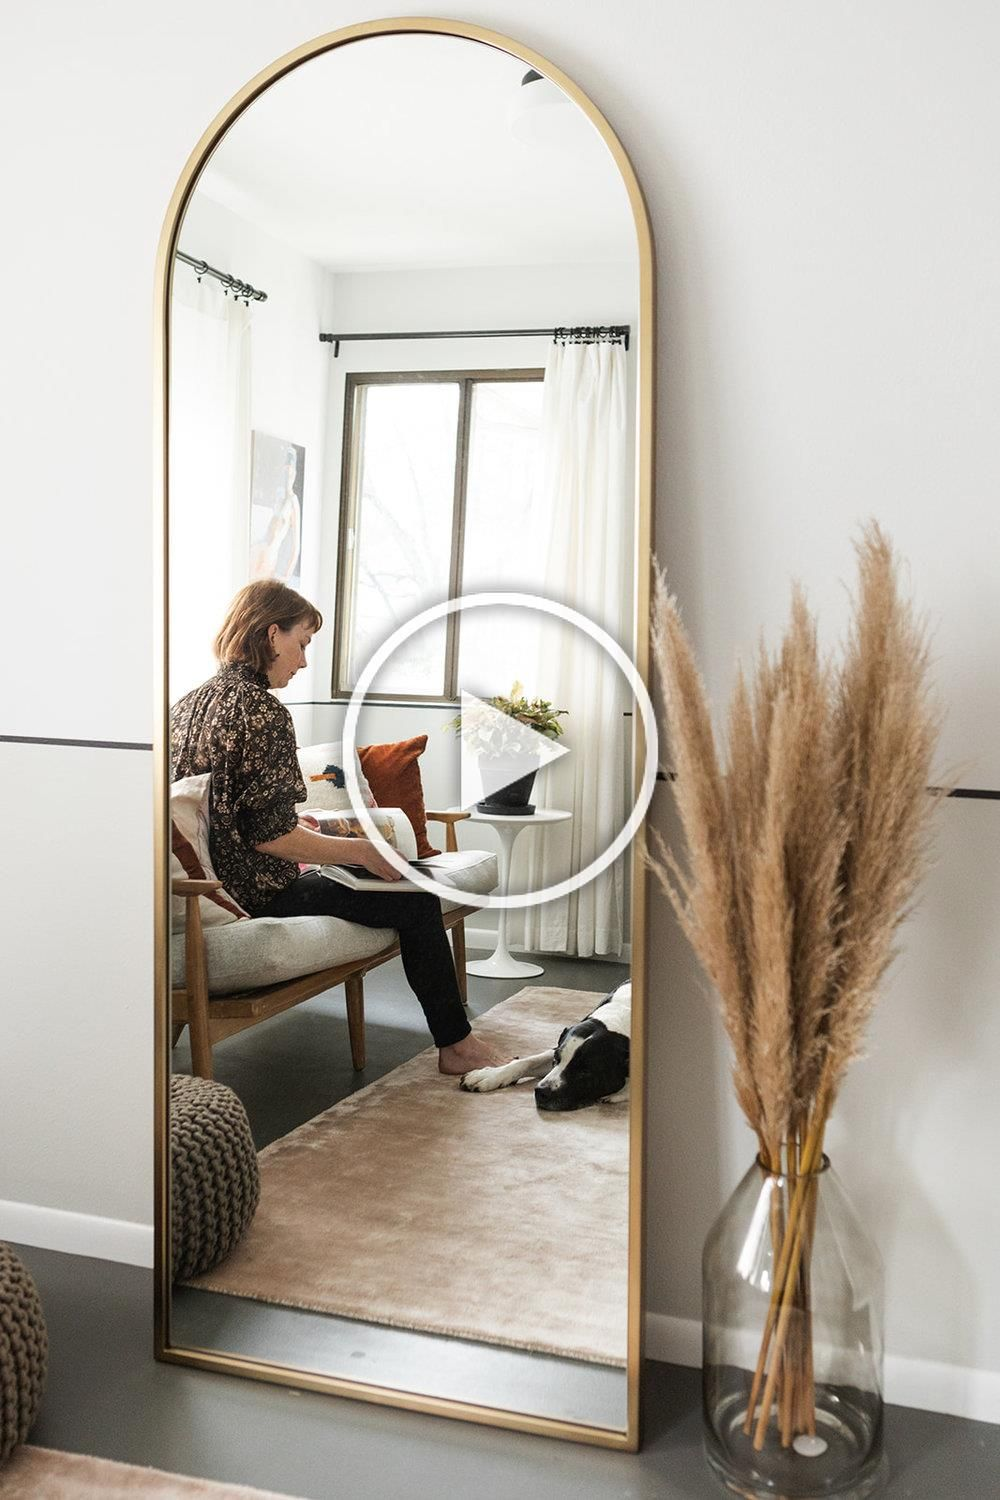 The Ranchalow Dressing Room Reveal Metal Framed Arched Floor Mirror From West Elm Living Room Mirrors Aesthetic Room Decor Home Decor